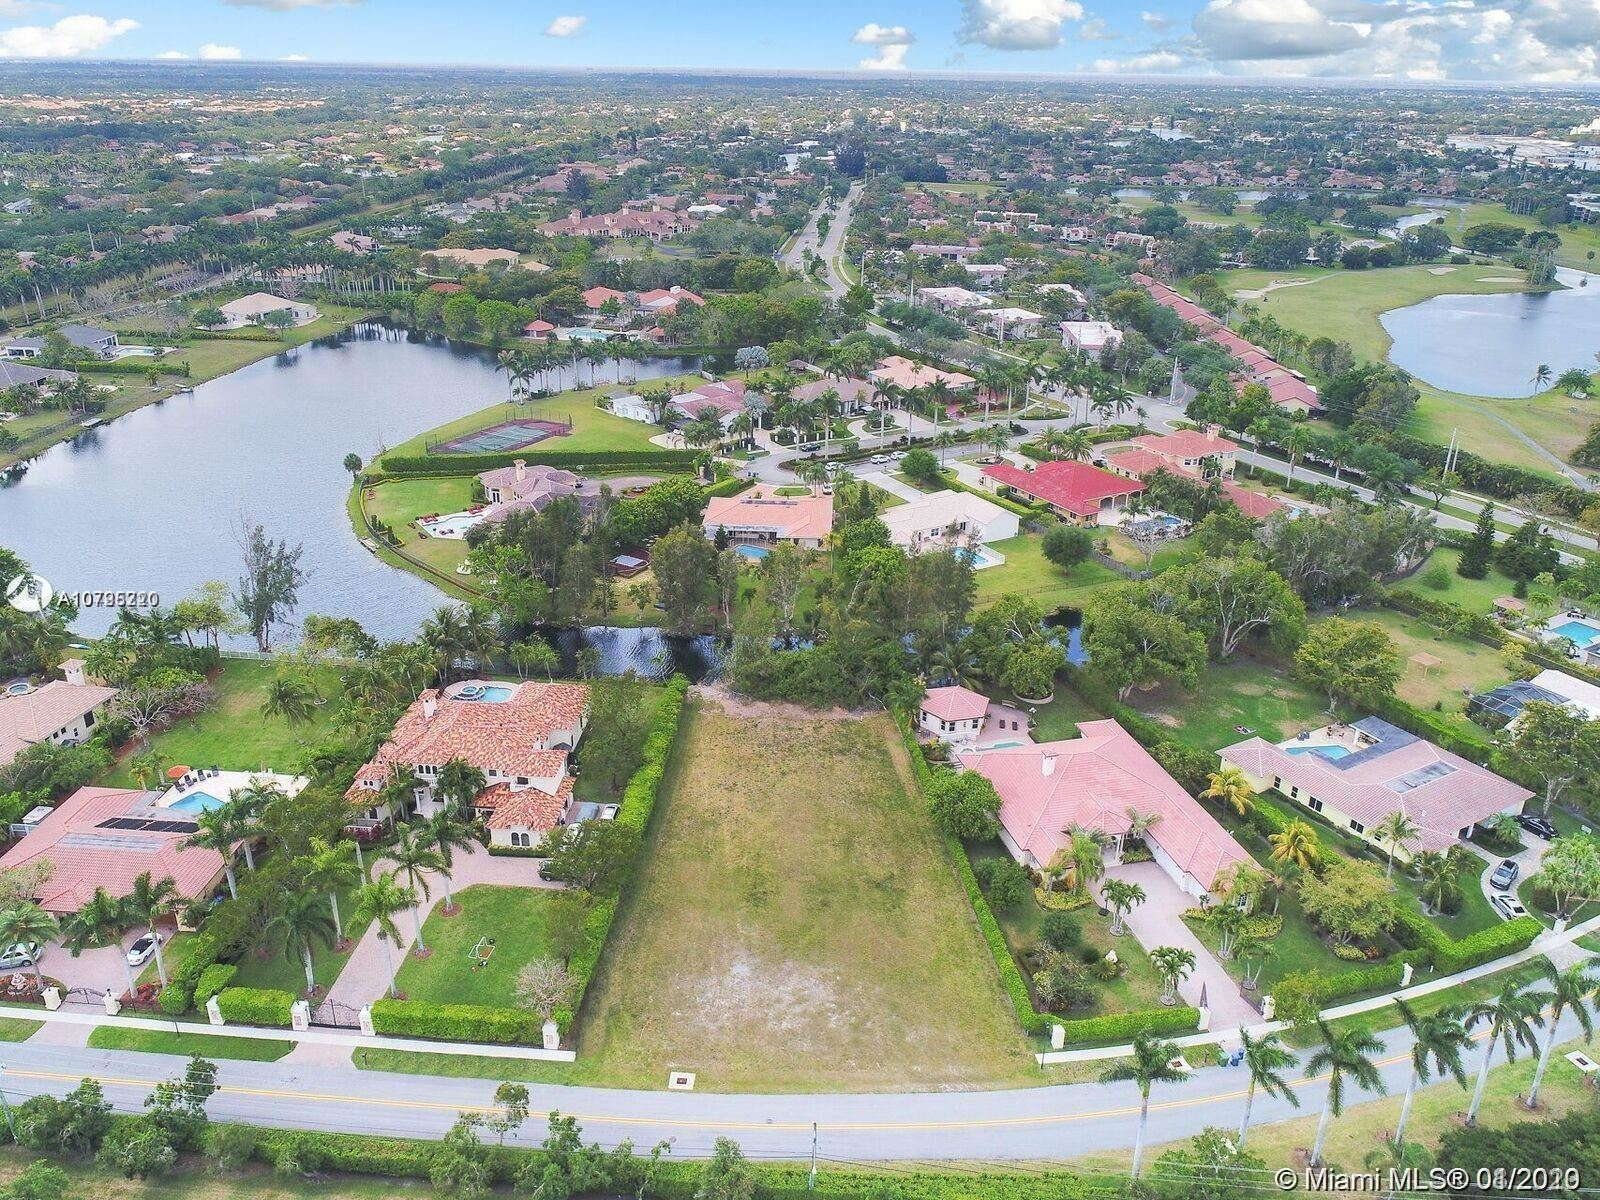 Photo 1 of Listing MLS a10795220 in 441 Ranch Rd Weston FL 33326